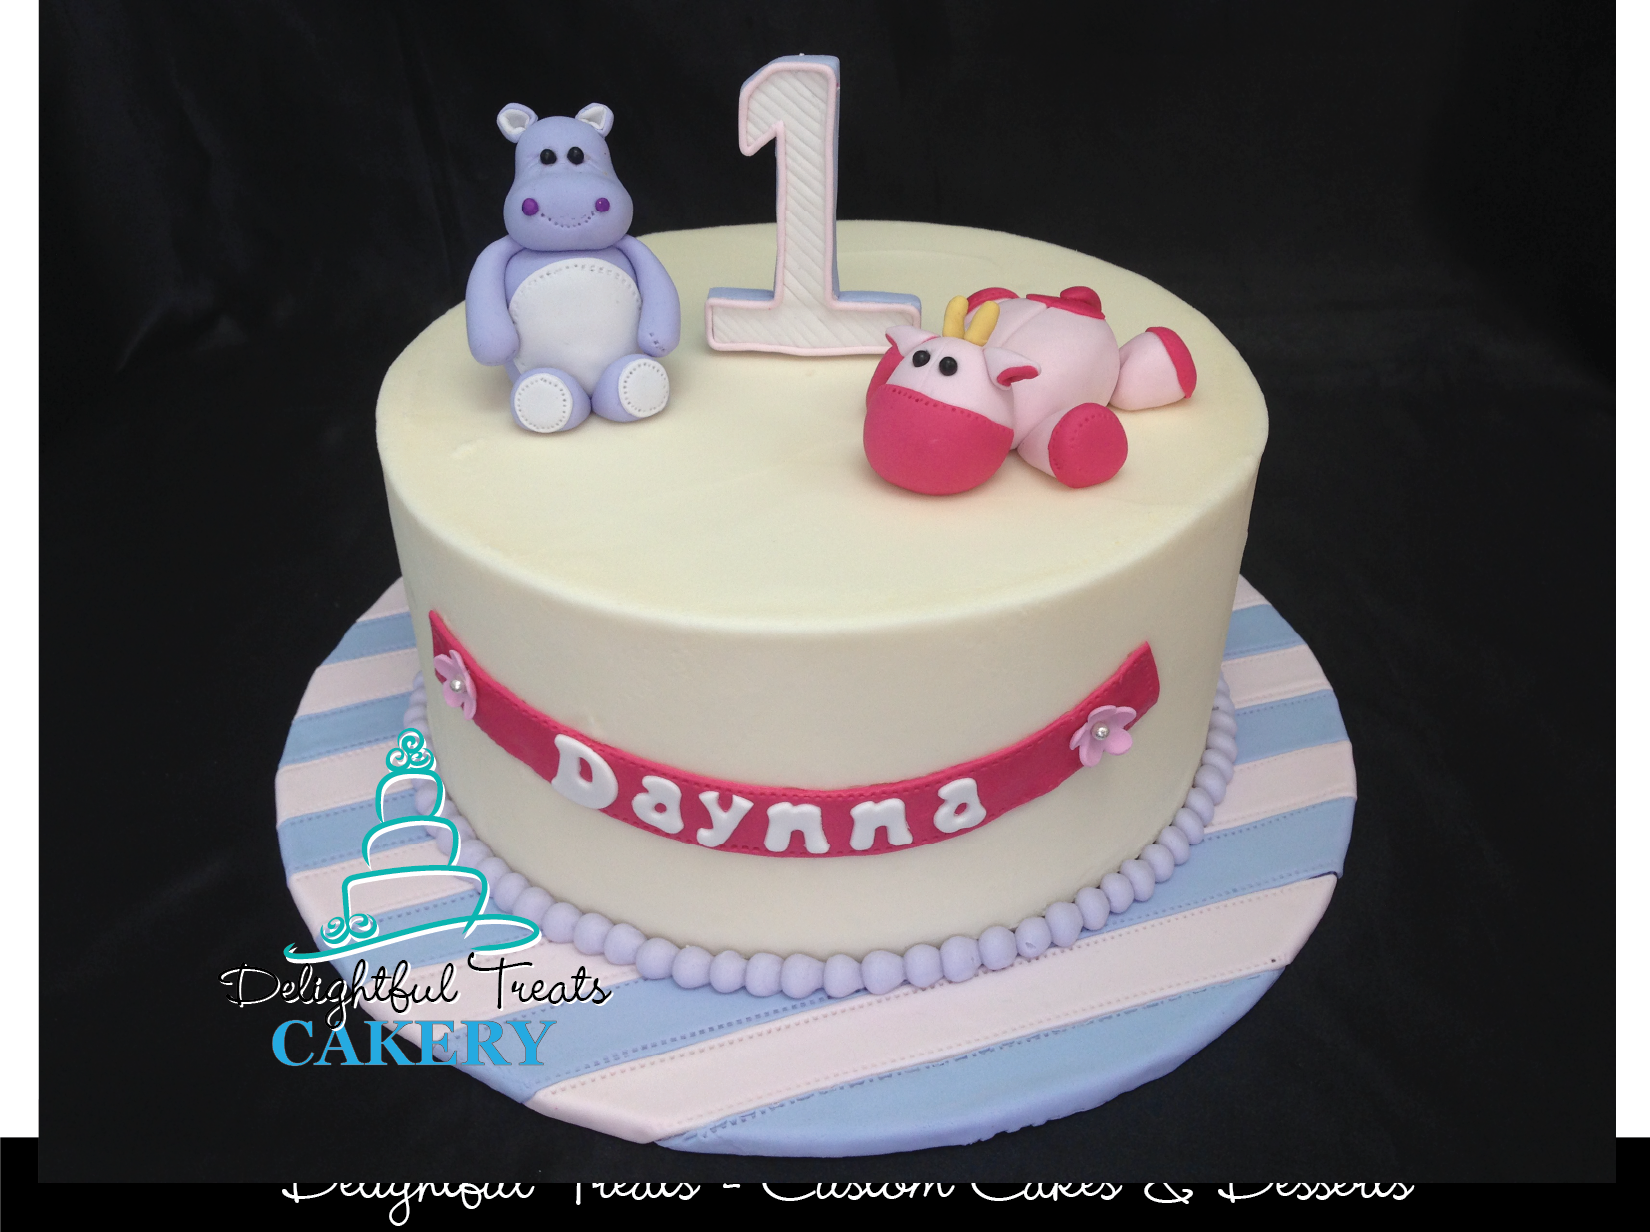 Stuffed Animal Fondant Hippo Giraffe First Birthday Cake By Delightful Treats Cakery Orlando